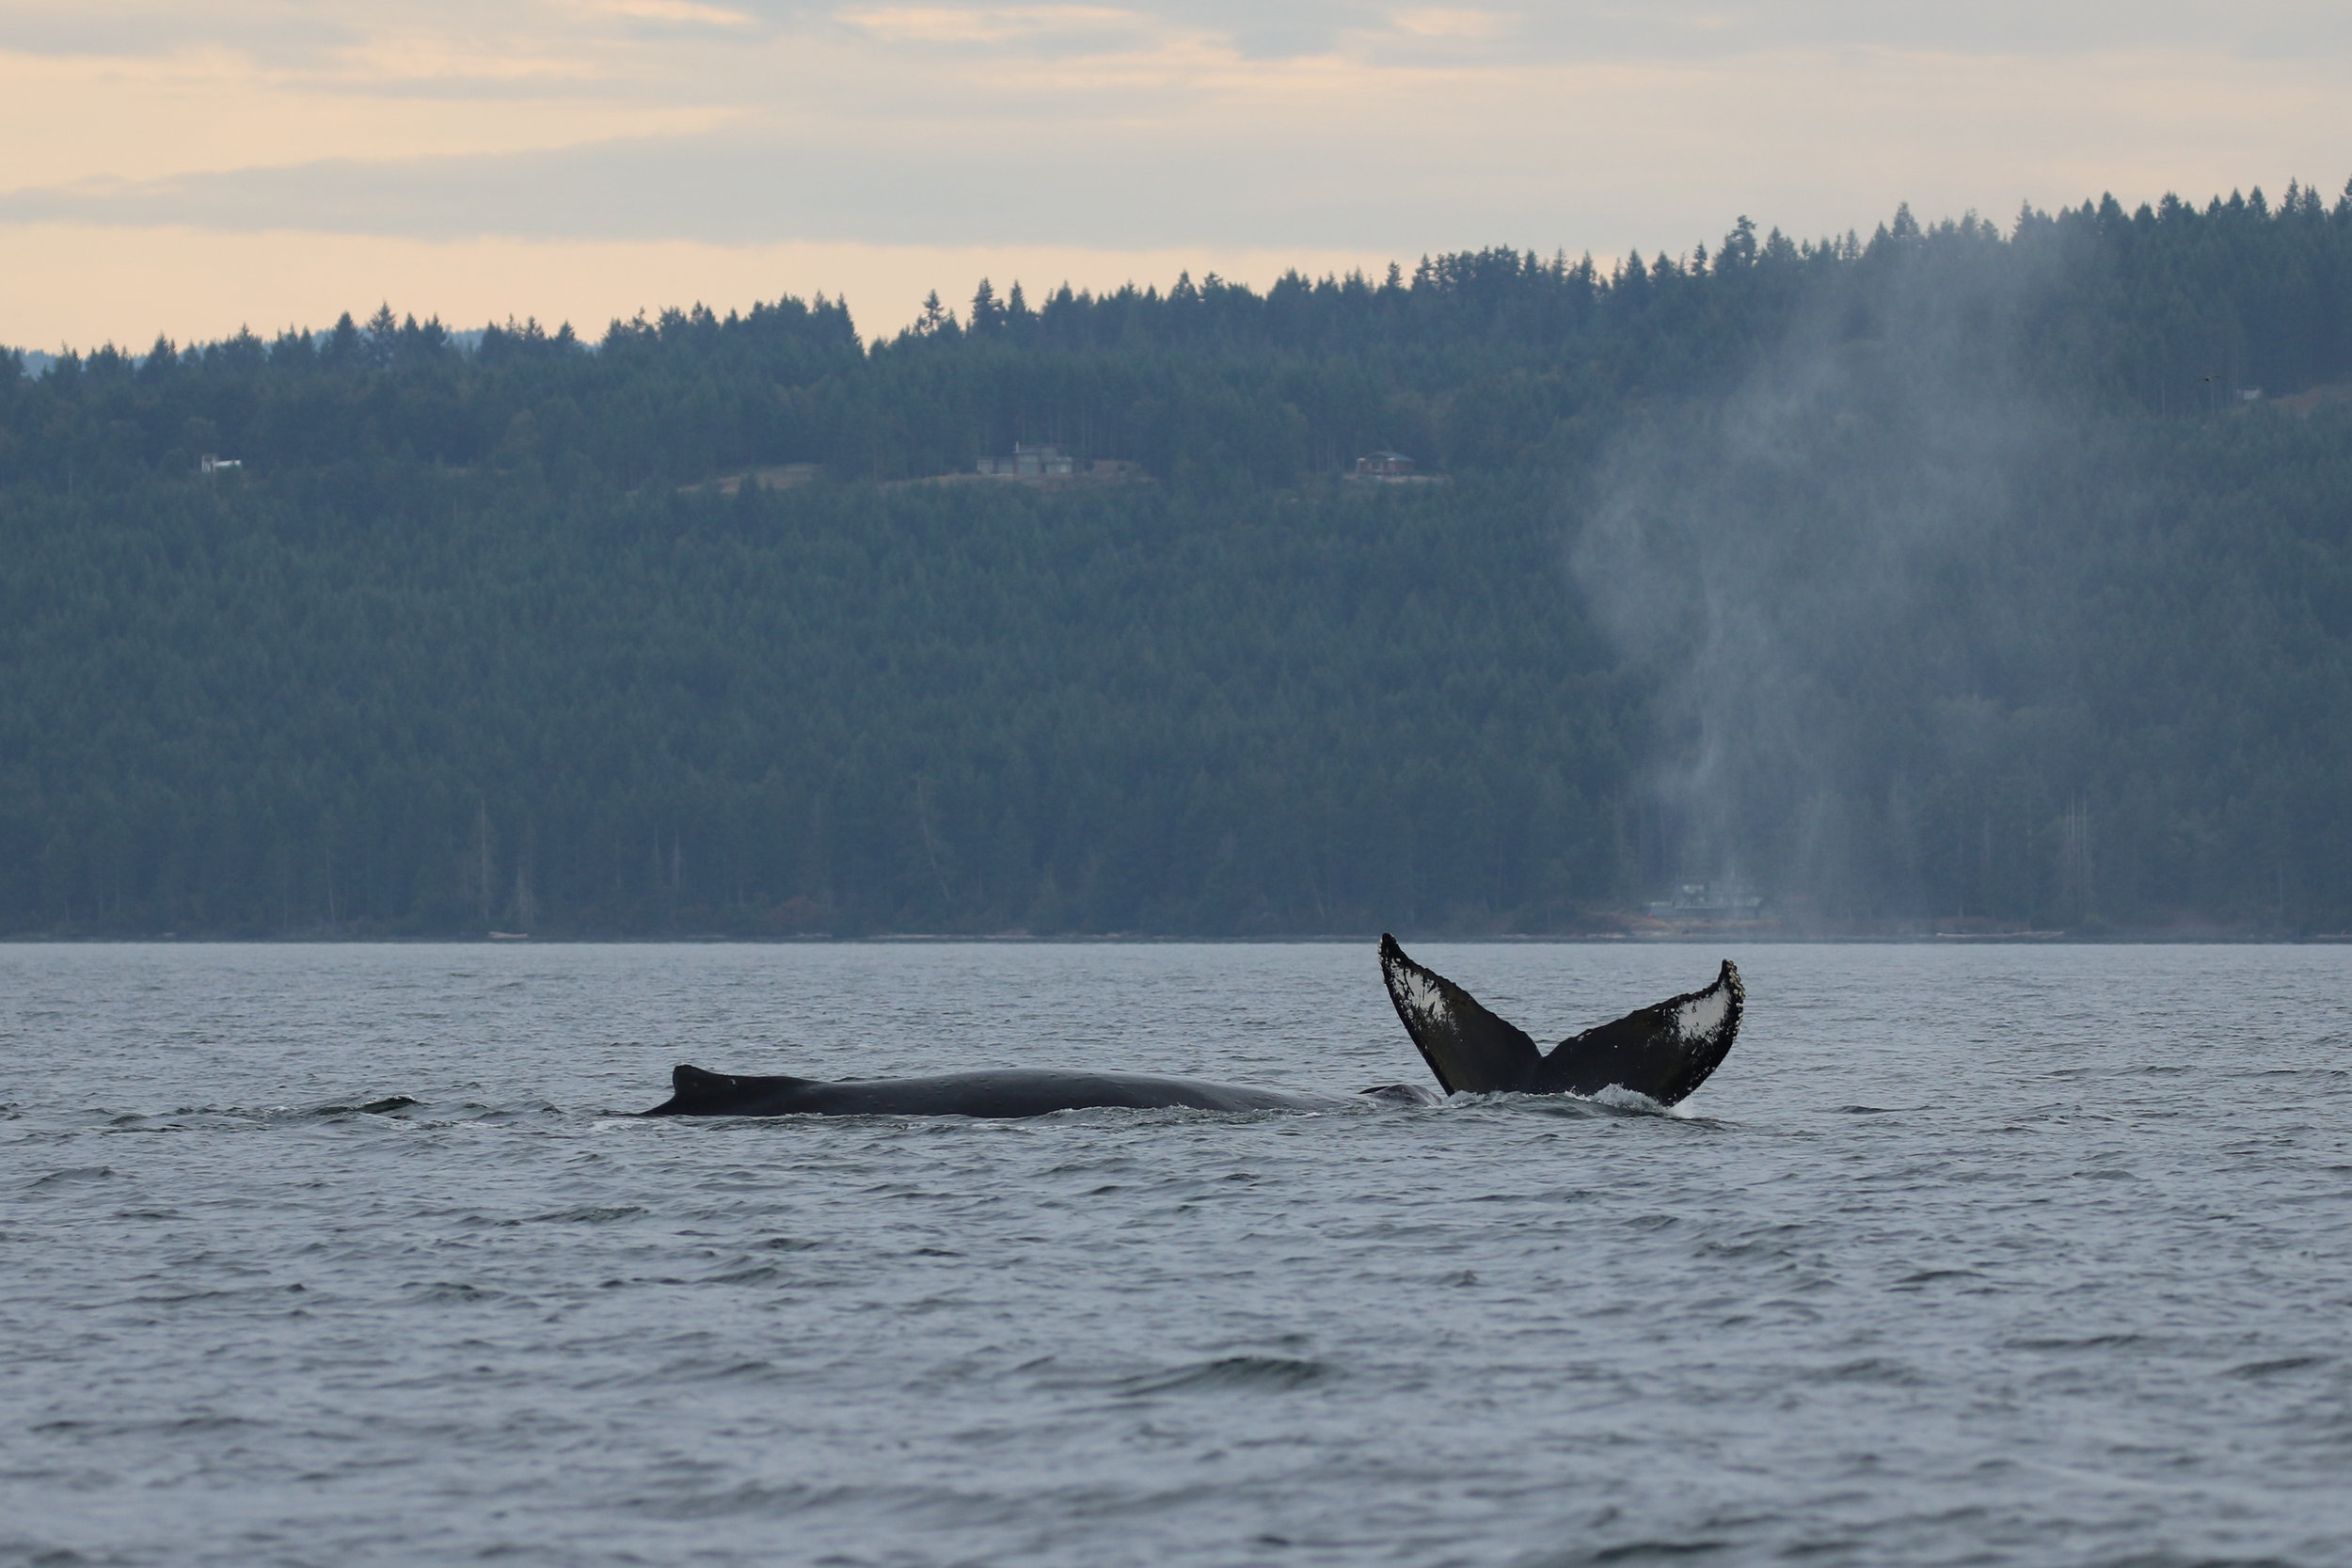 Heather (right) and Big Momma (left) at the surface together. Photo by Val Watson.